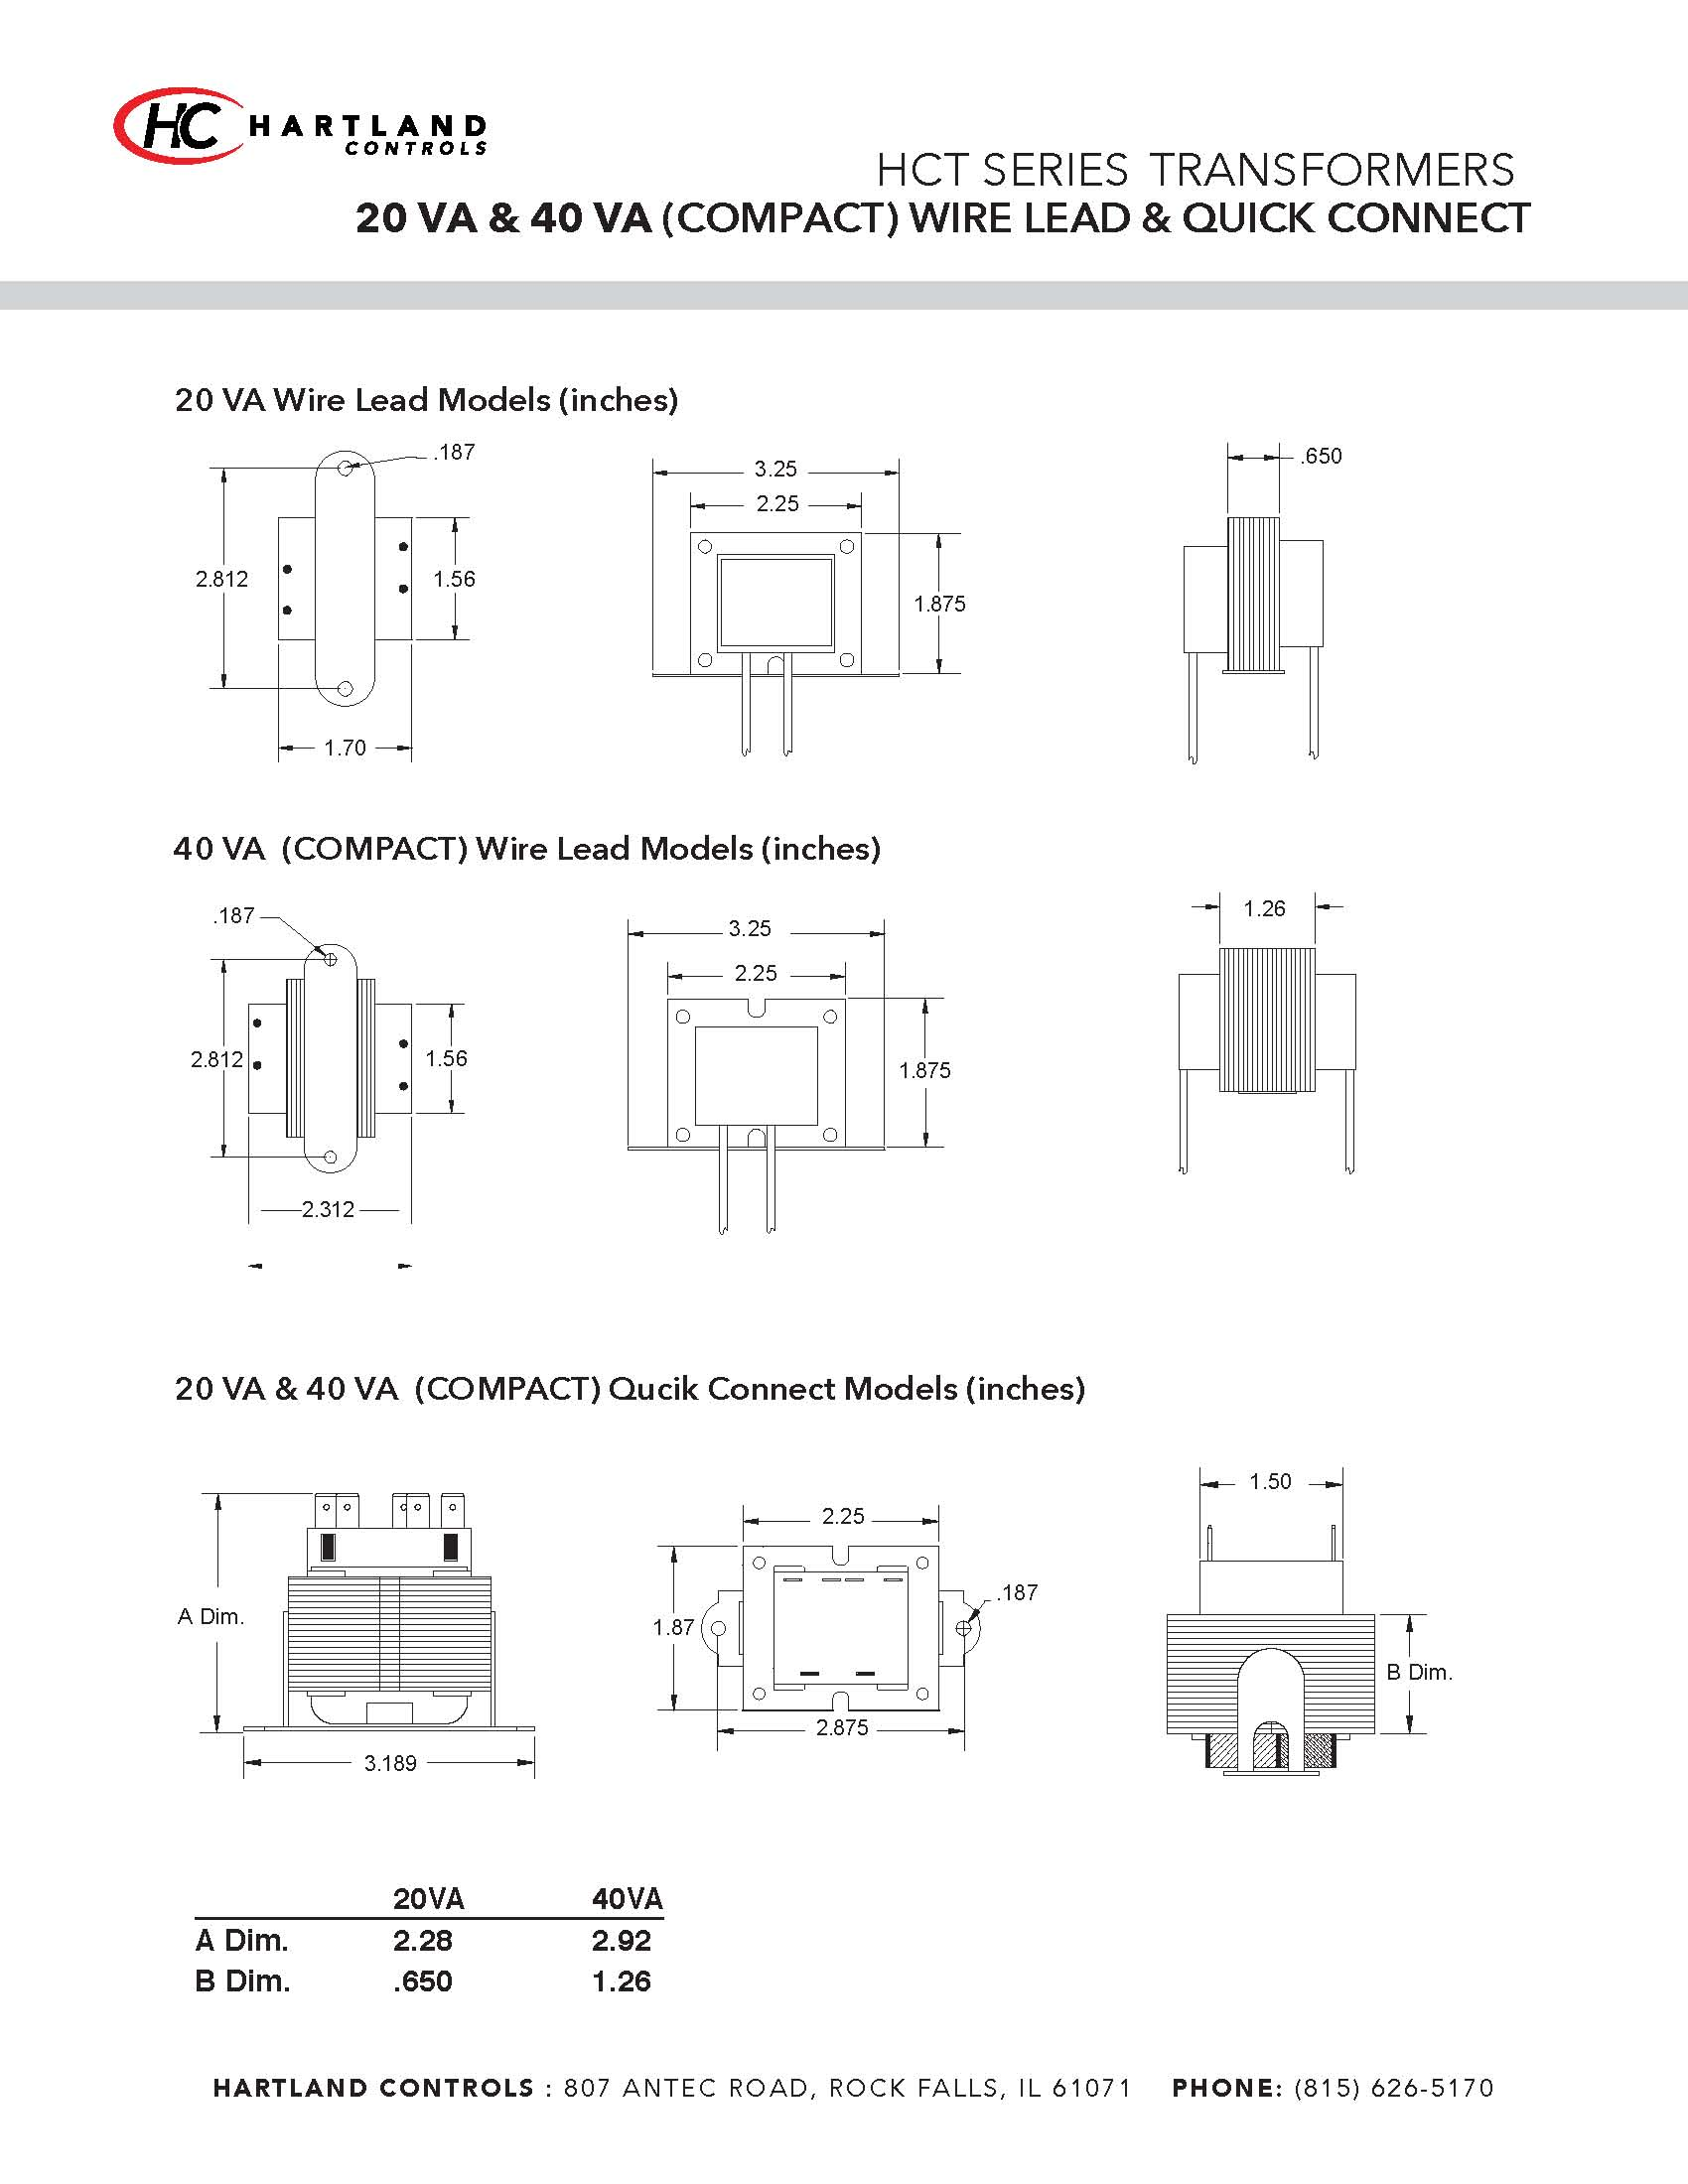 Transformer With Wire Leads And Quick Connect Universal 24 Vac 40 Va Fraser Johnston Furnace Wiring Diagram Designed Box Lug Terminations Connects For Easy Replacement In Your Application Coil Shields Provide Maximum Protection From All